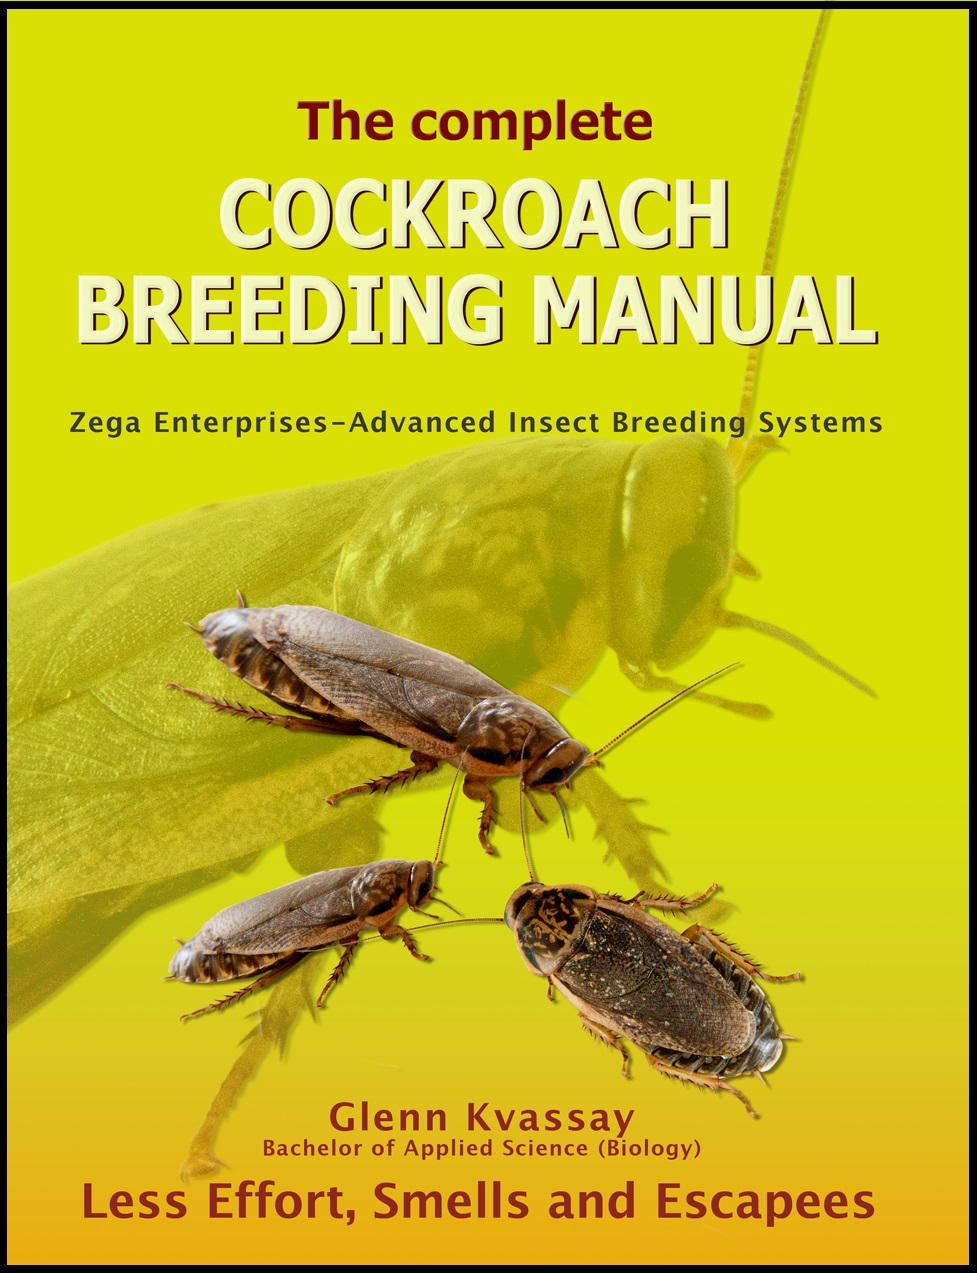 CKBM-final cockroach book-thumbnail